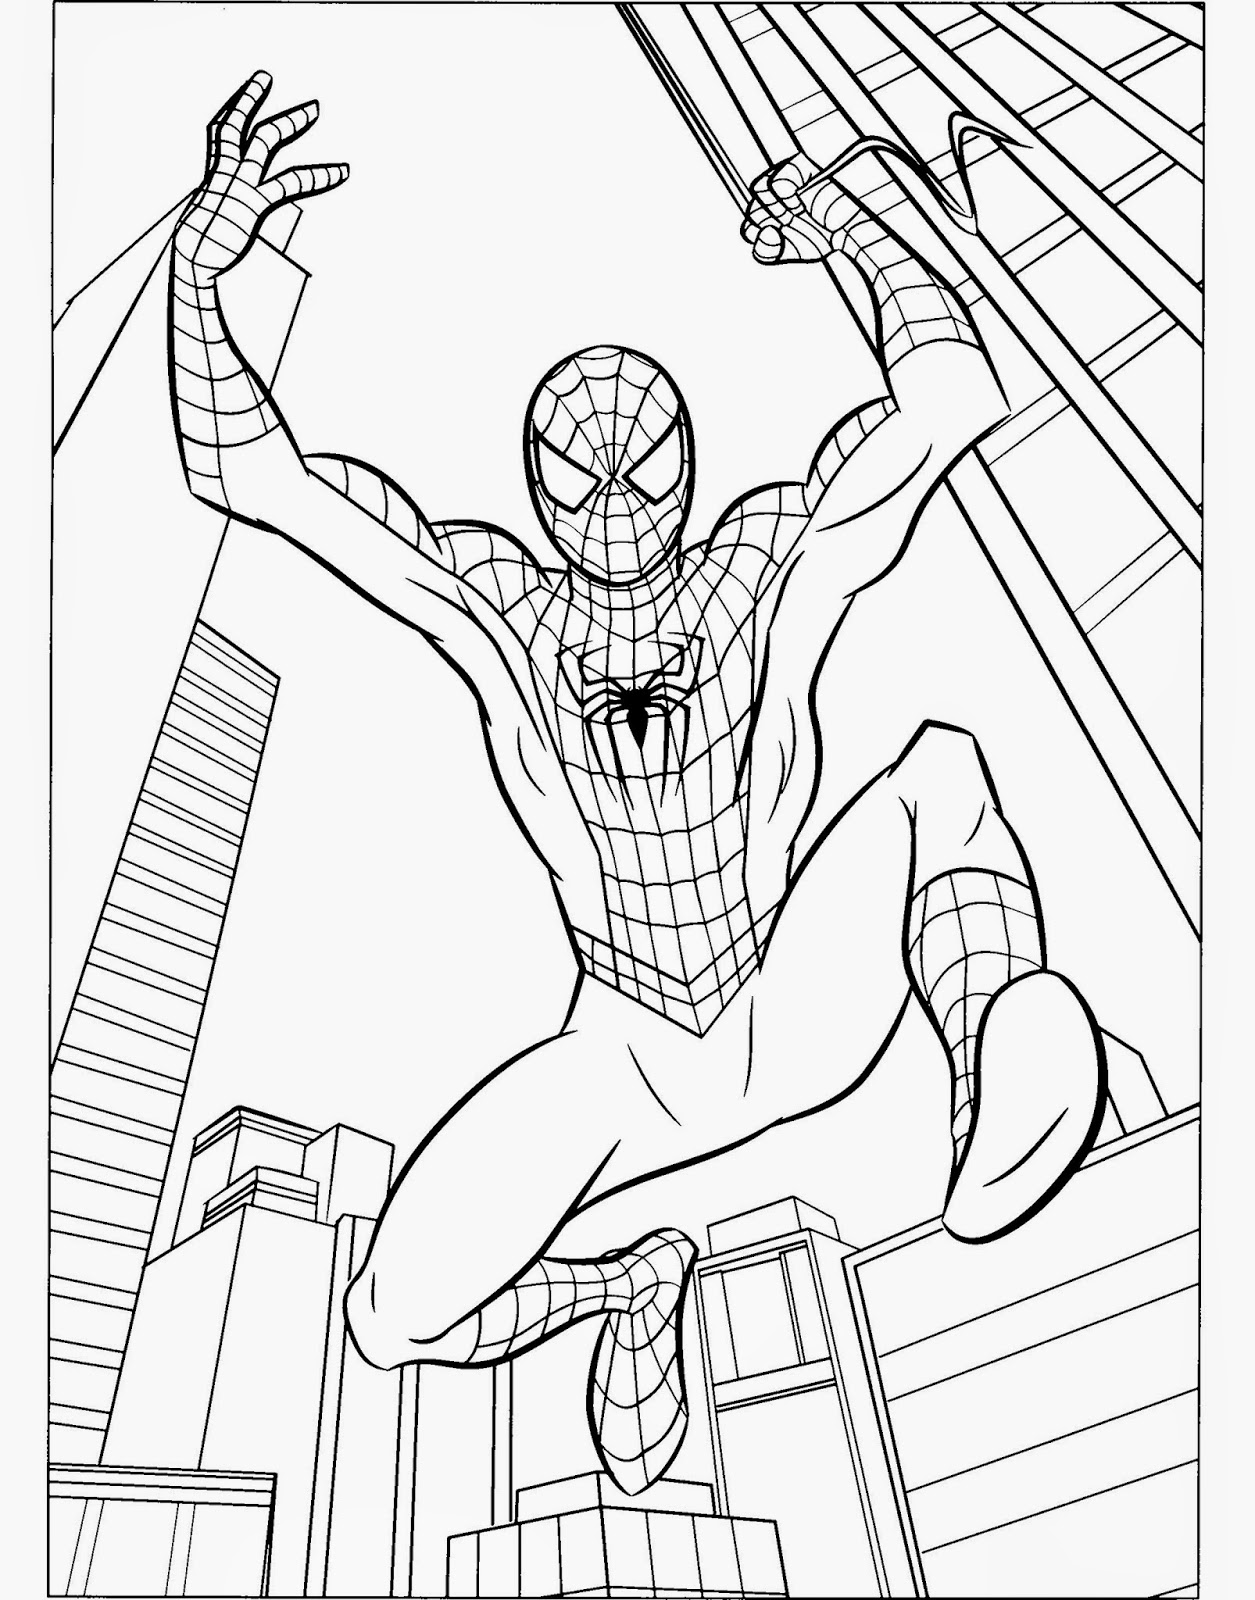 coloring pictures spiderman spiderman free to color for kids spiderman kids coloring spiderman pictures coloring